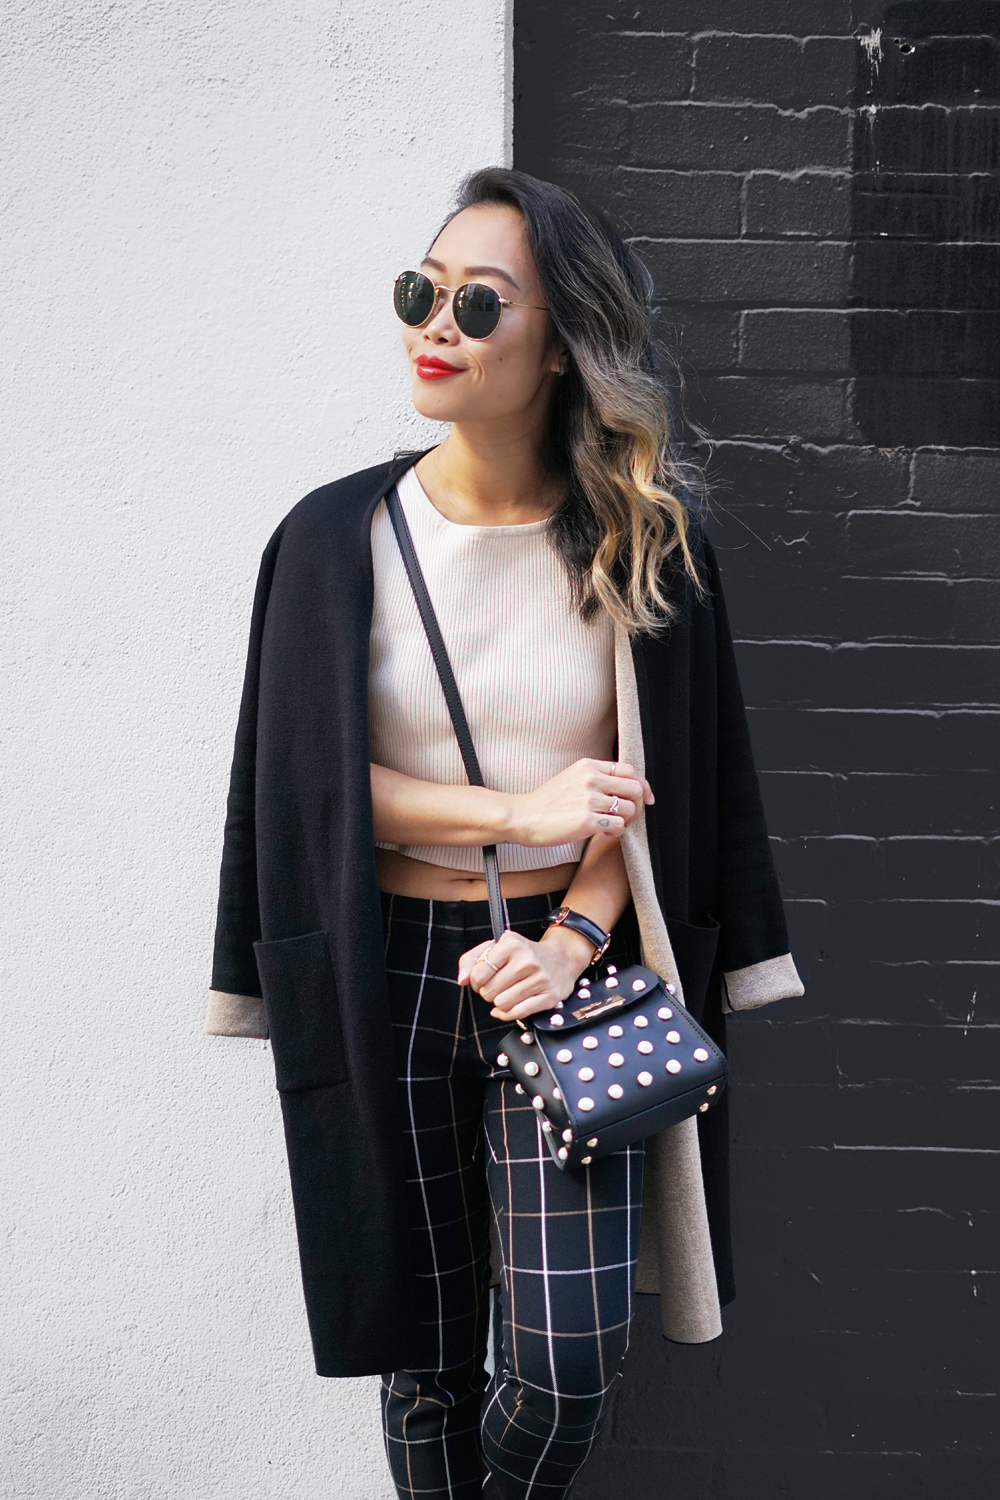 03maidenlane-sf-fashion-style-ootd